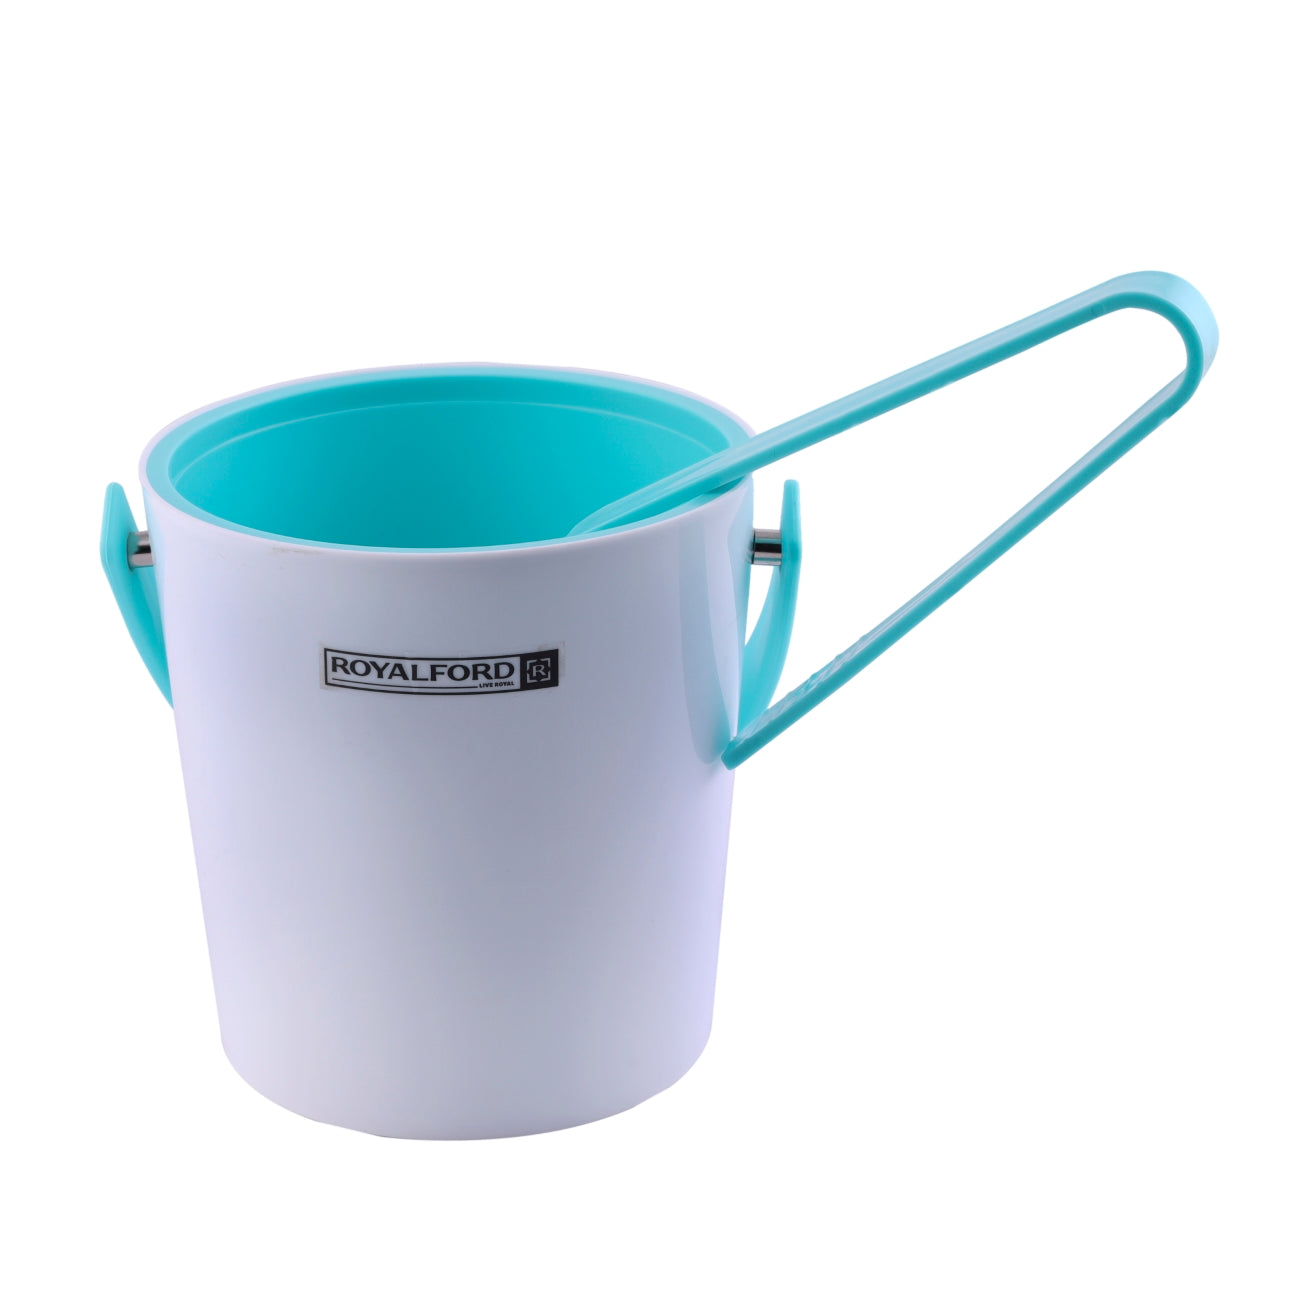 Royalford RF8696 Ice Bucket - Thick Walled Ice Bucket with Ice Tongs, Lid | Large Insulated Ice Cube Bucket with Carry Handle Ideal for Parties, Cocktail, Bottle Wine Cooler Drinks Holder